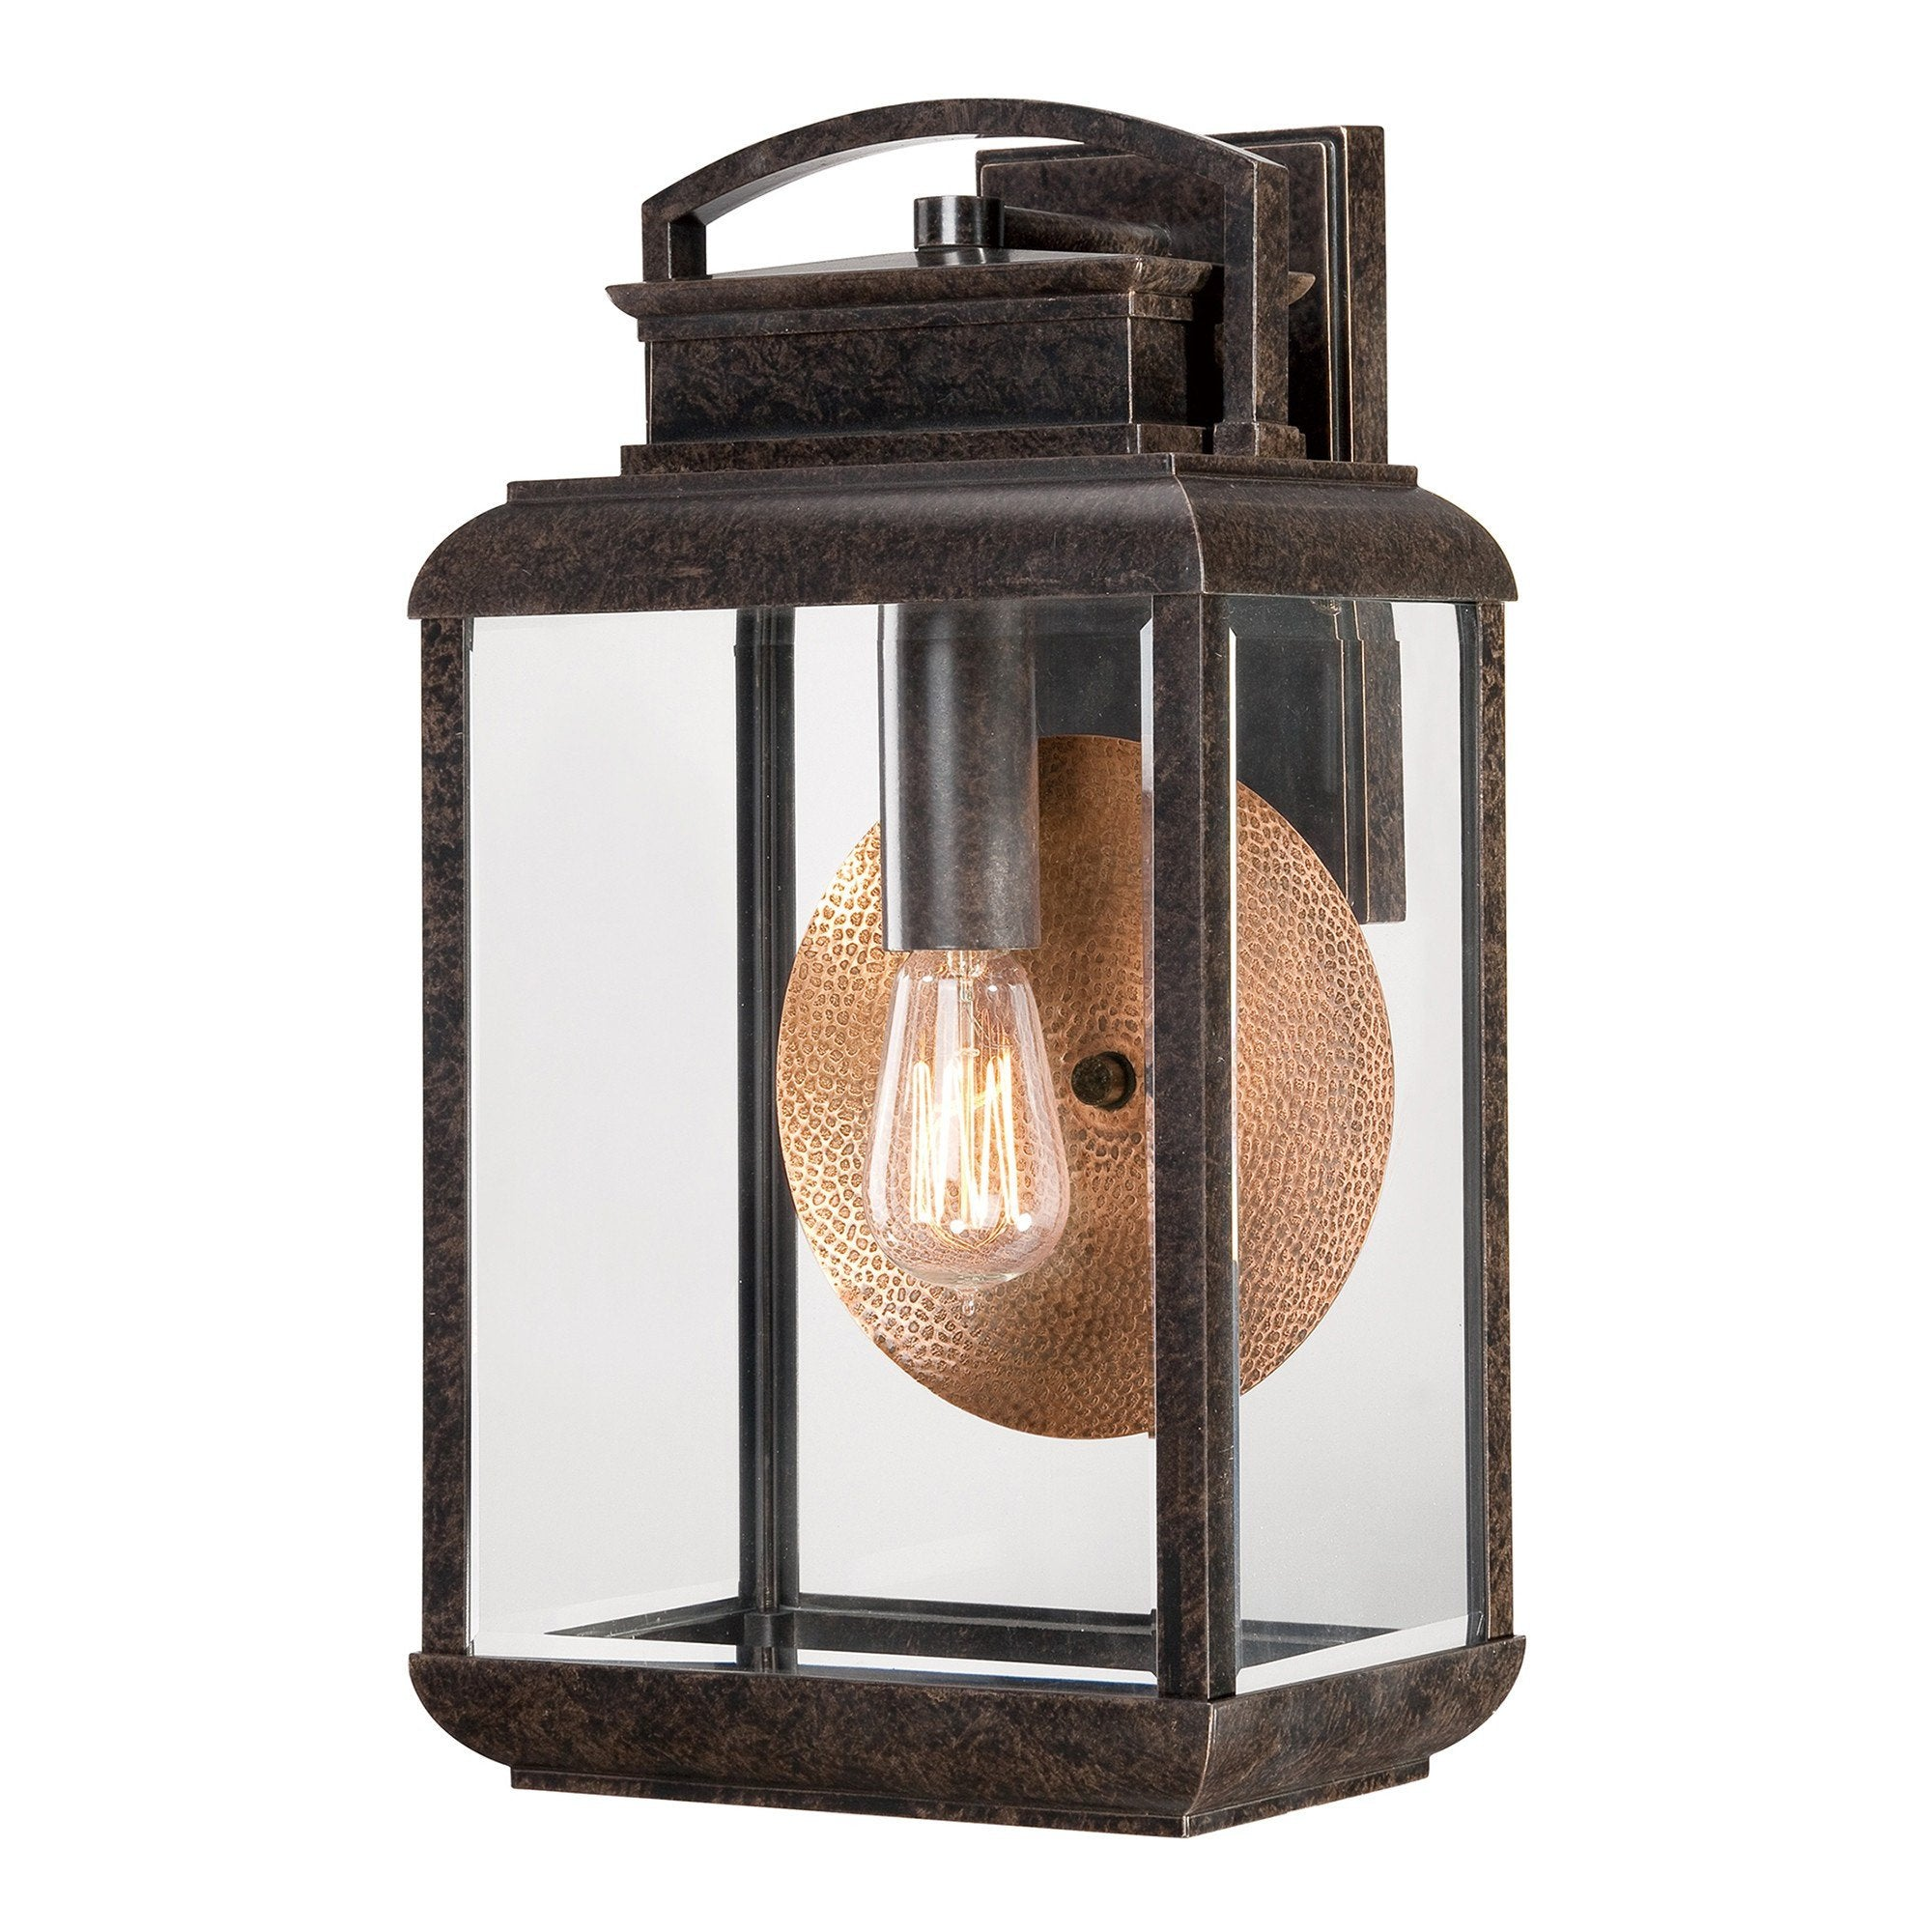 Quoizel Byron Large Wall Lantern - London Lighting - 1